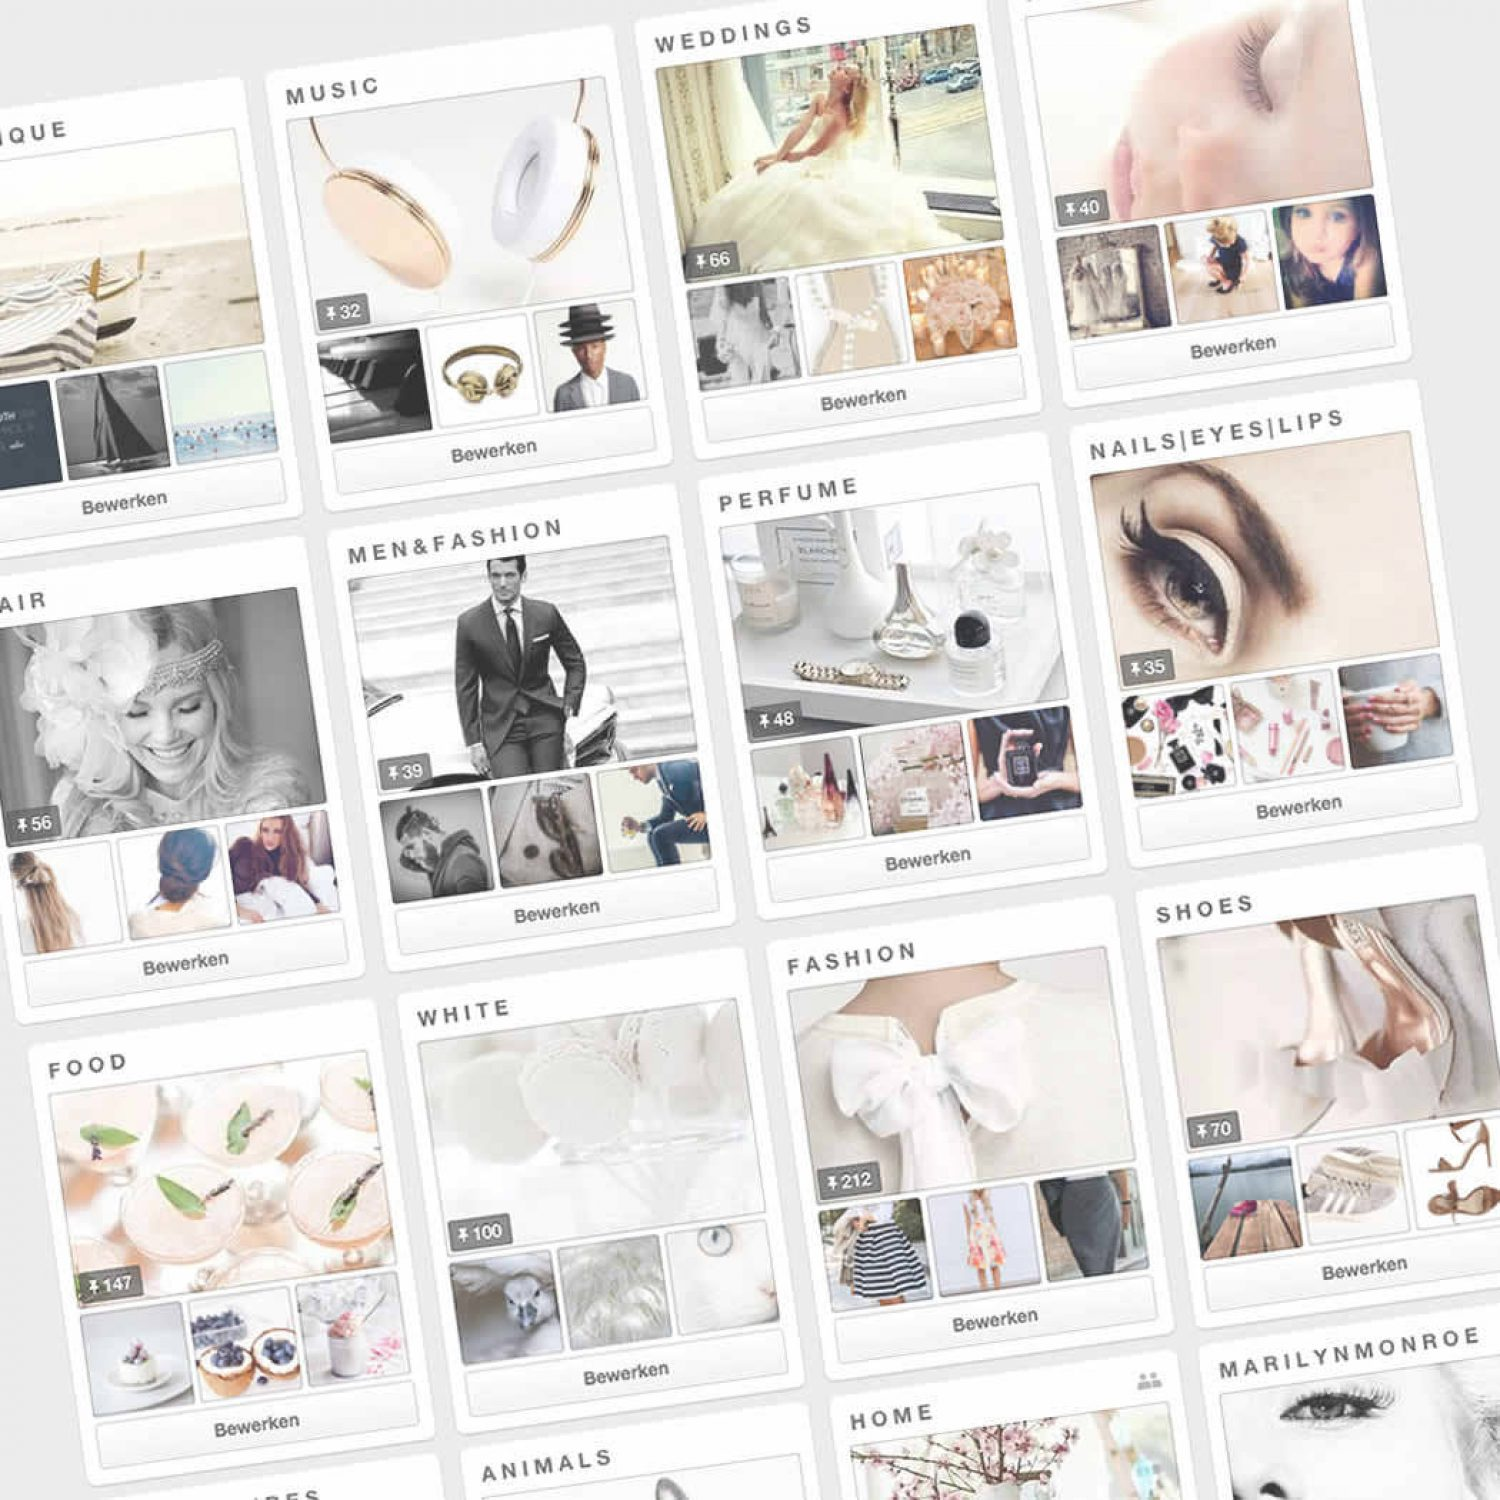 Wat is er zo Pinteresting aan Pinterest?